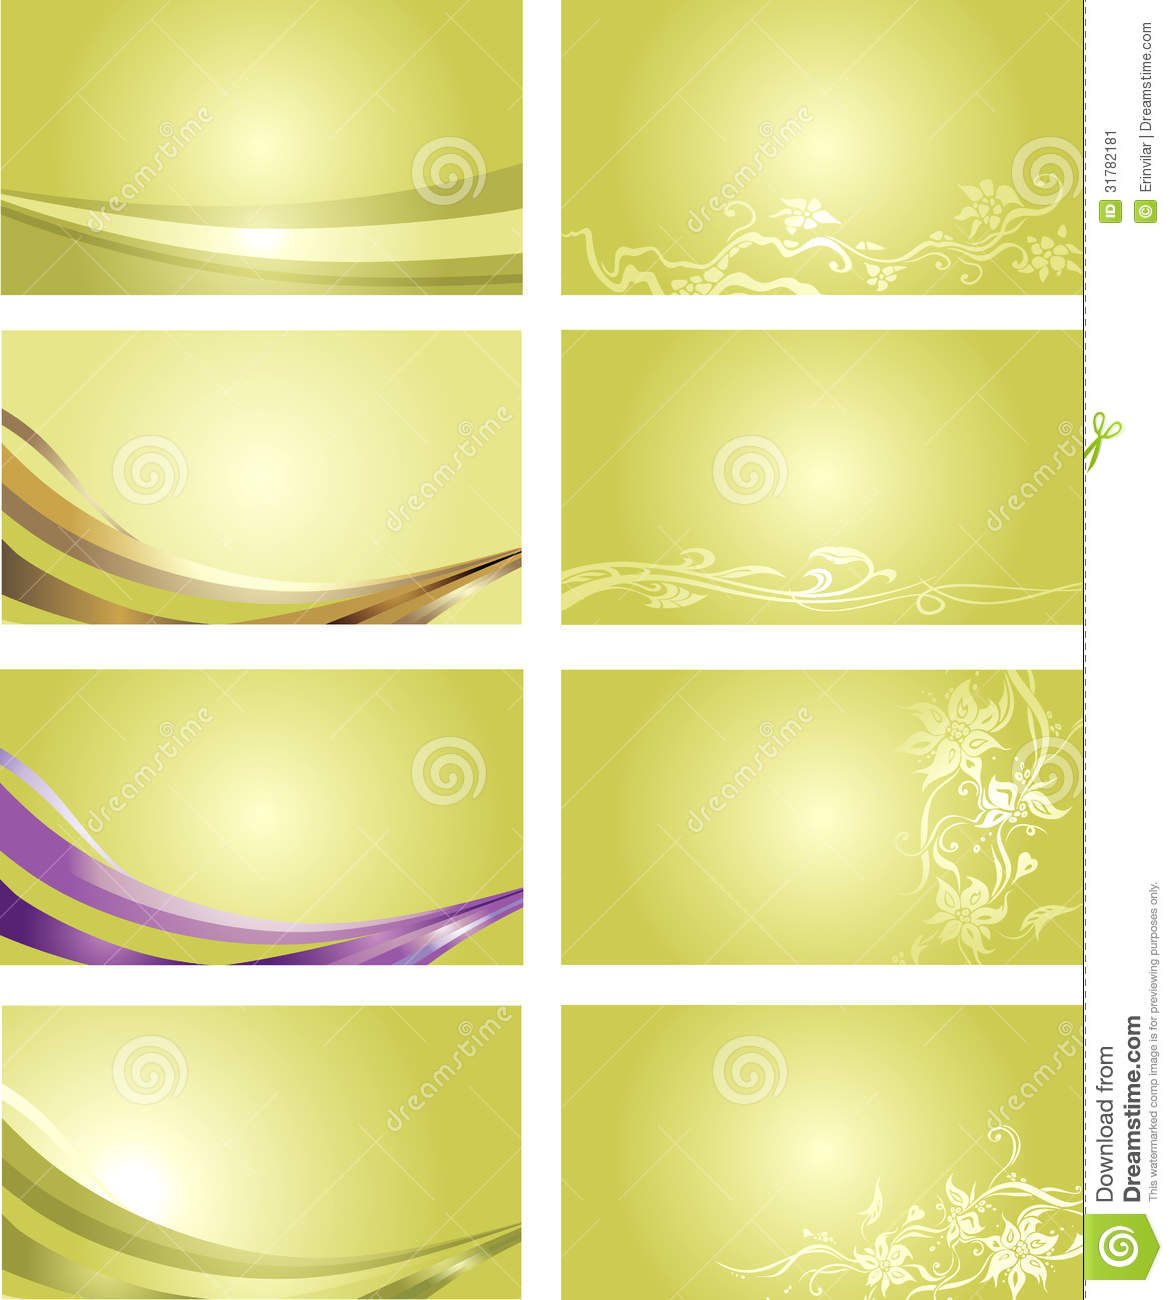 green business card background stock illustration image 31782181